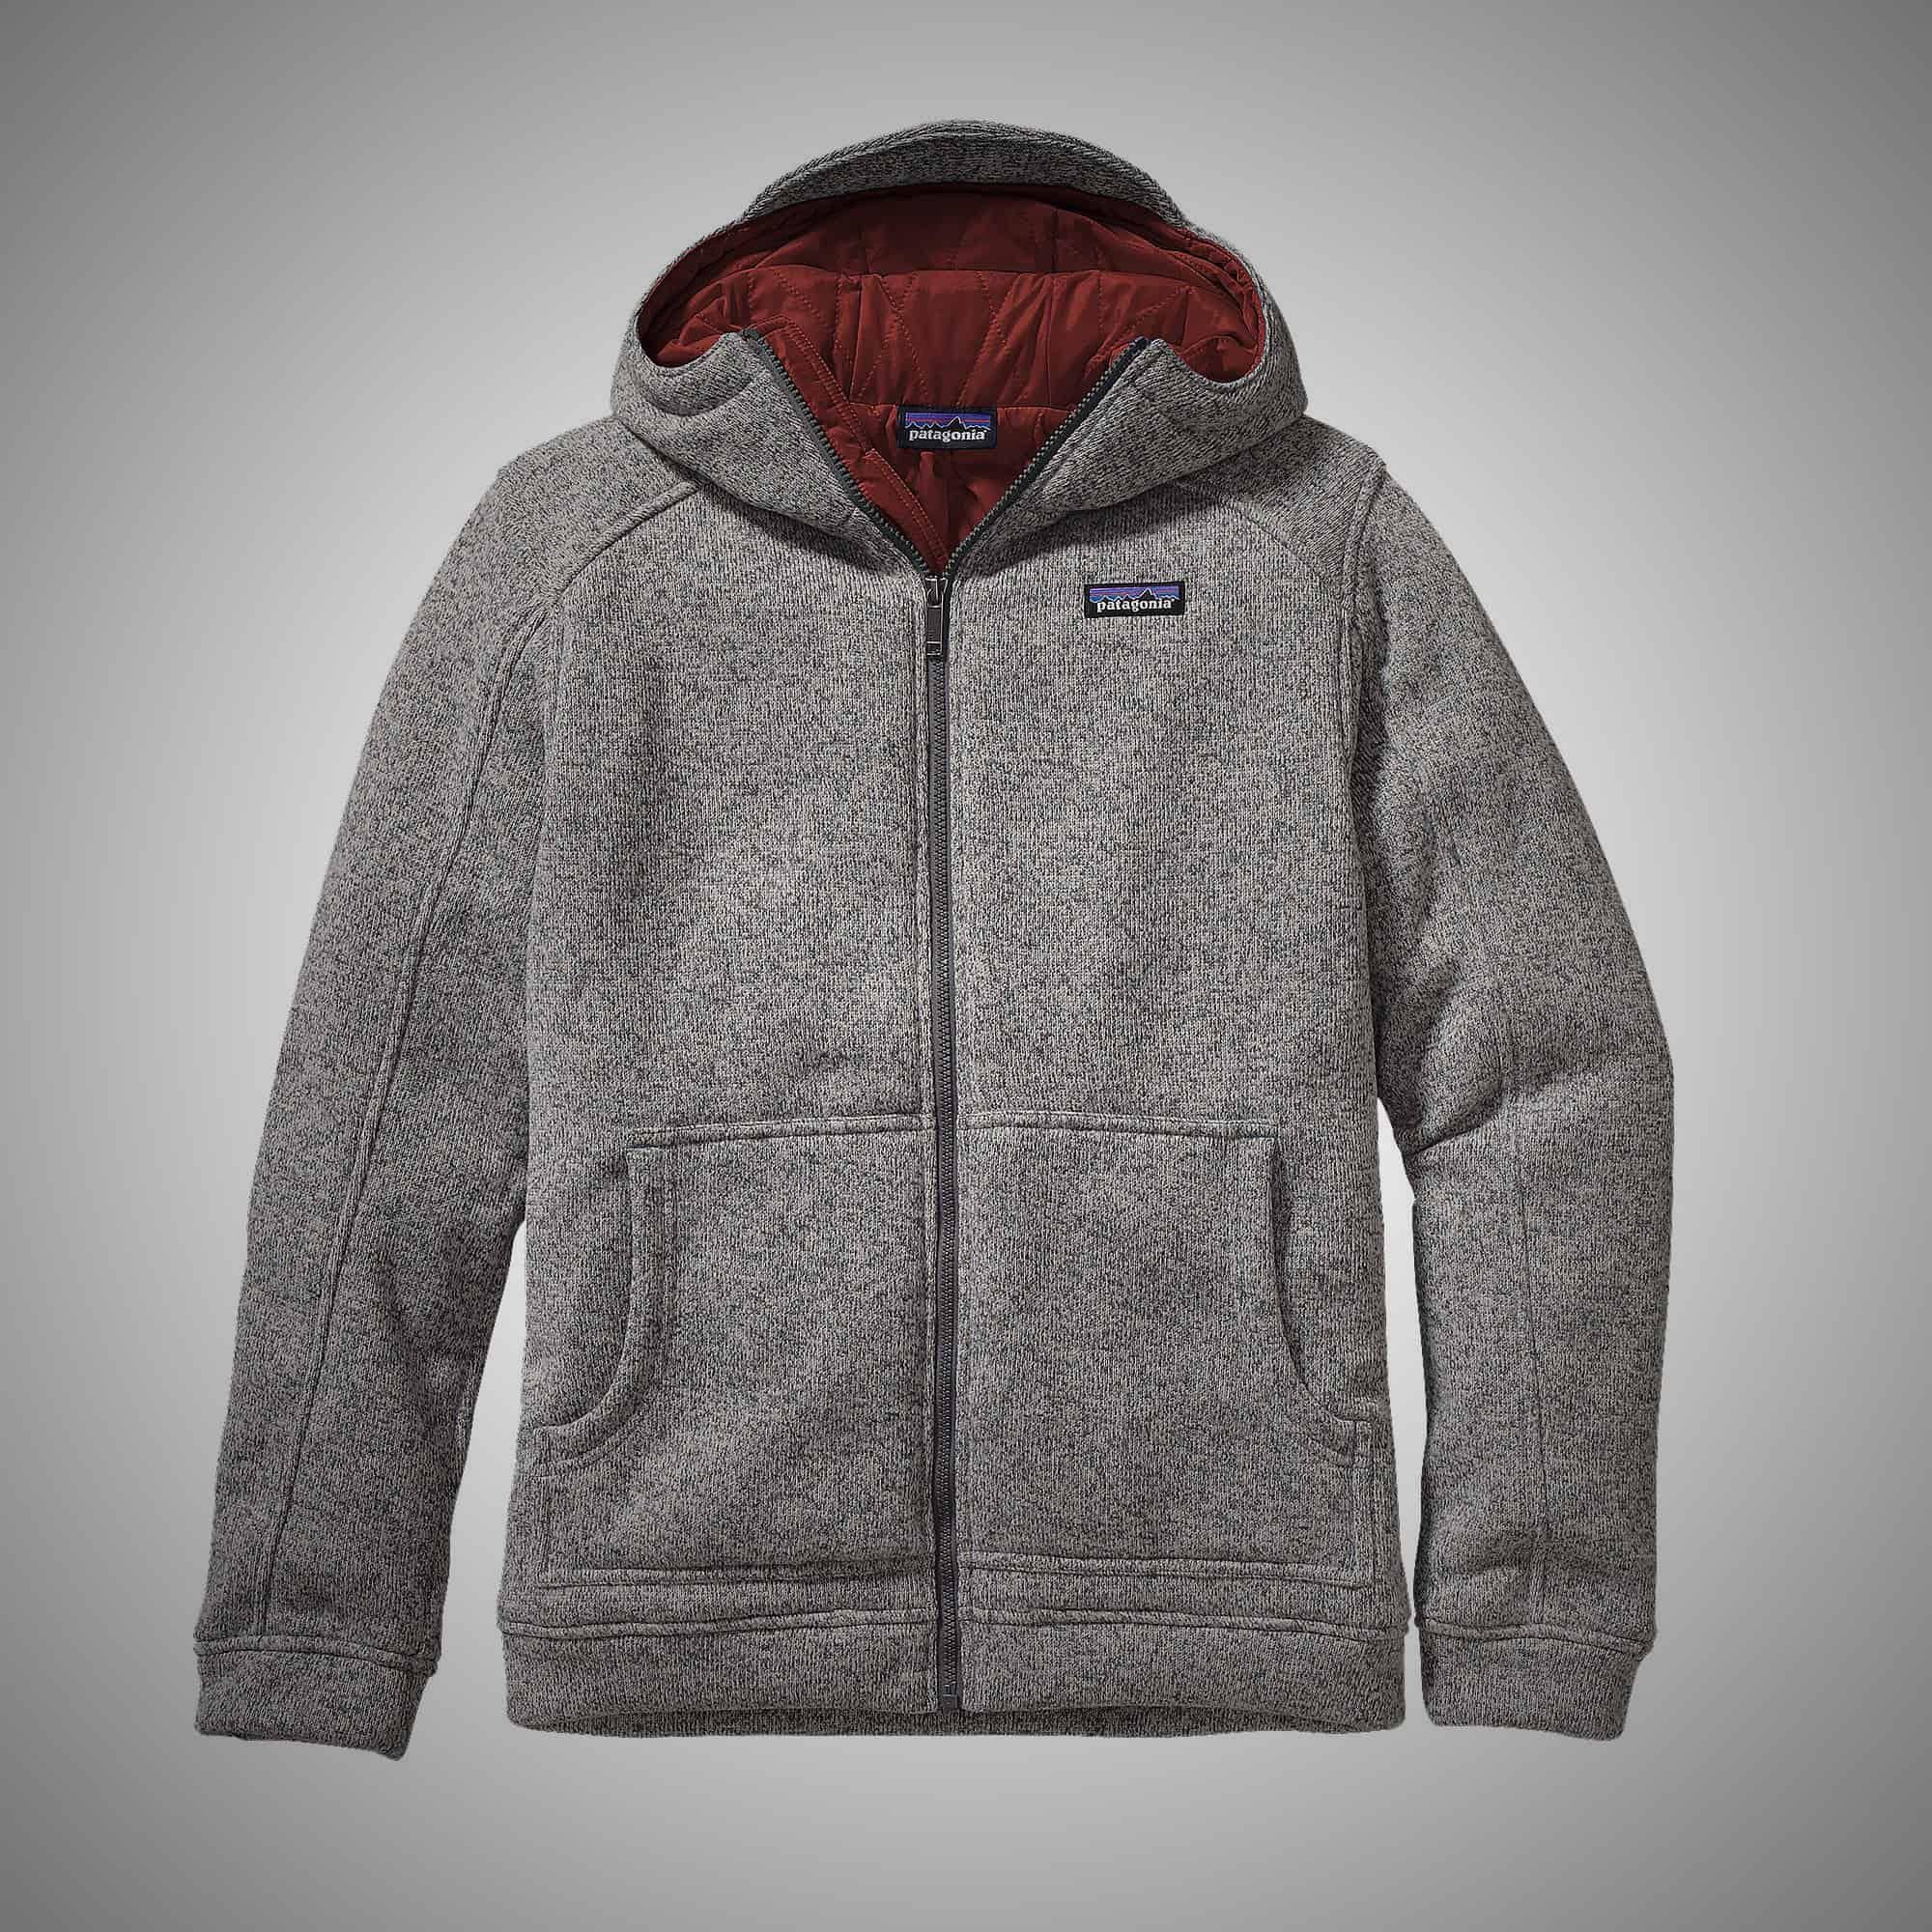 patagonia-insultated-hoodie